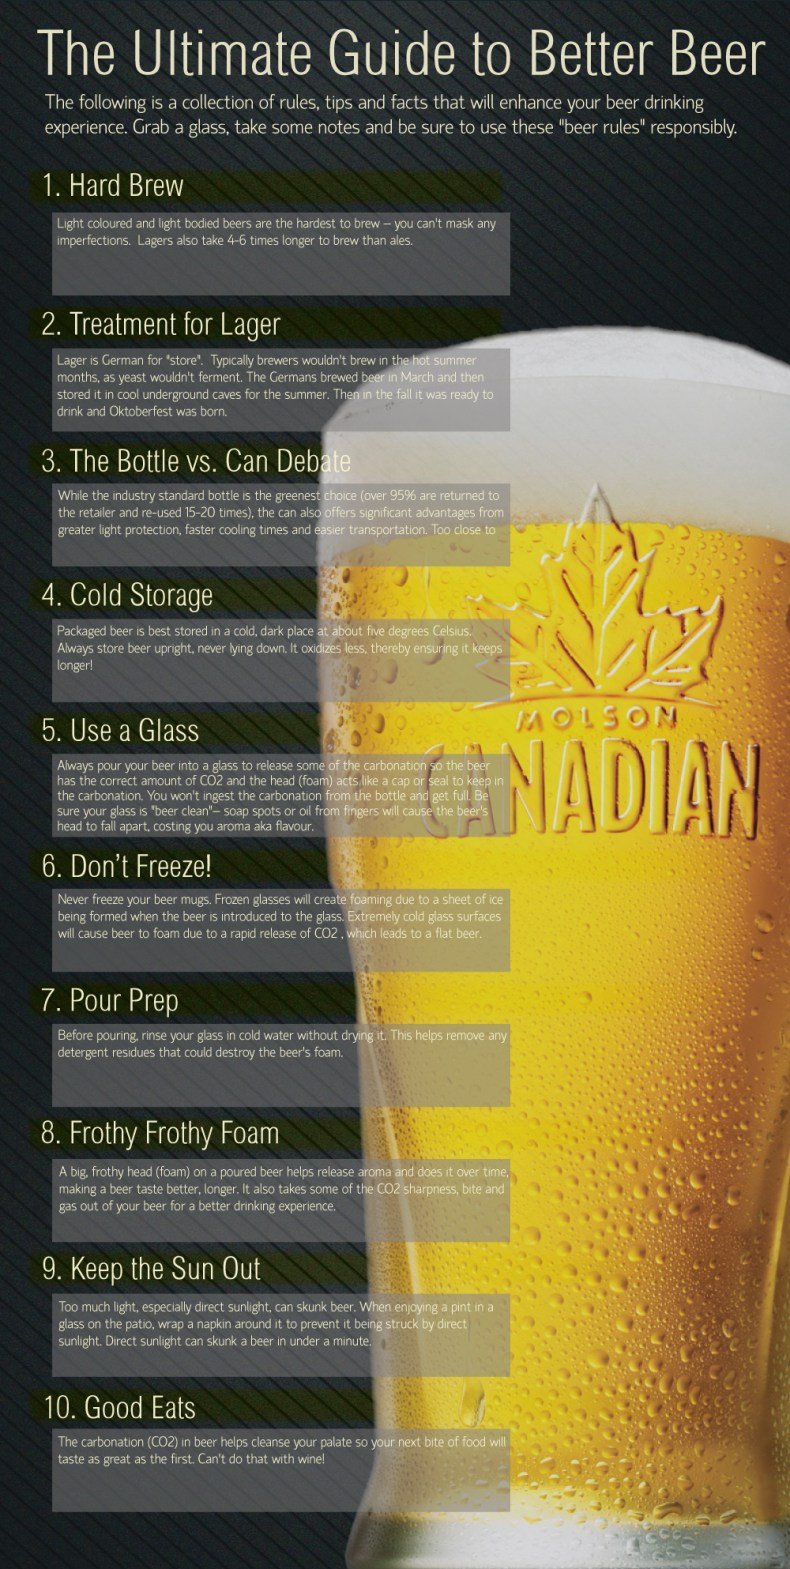 10-tips-ultimate-guide-to-better-beer